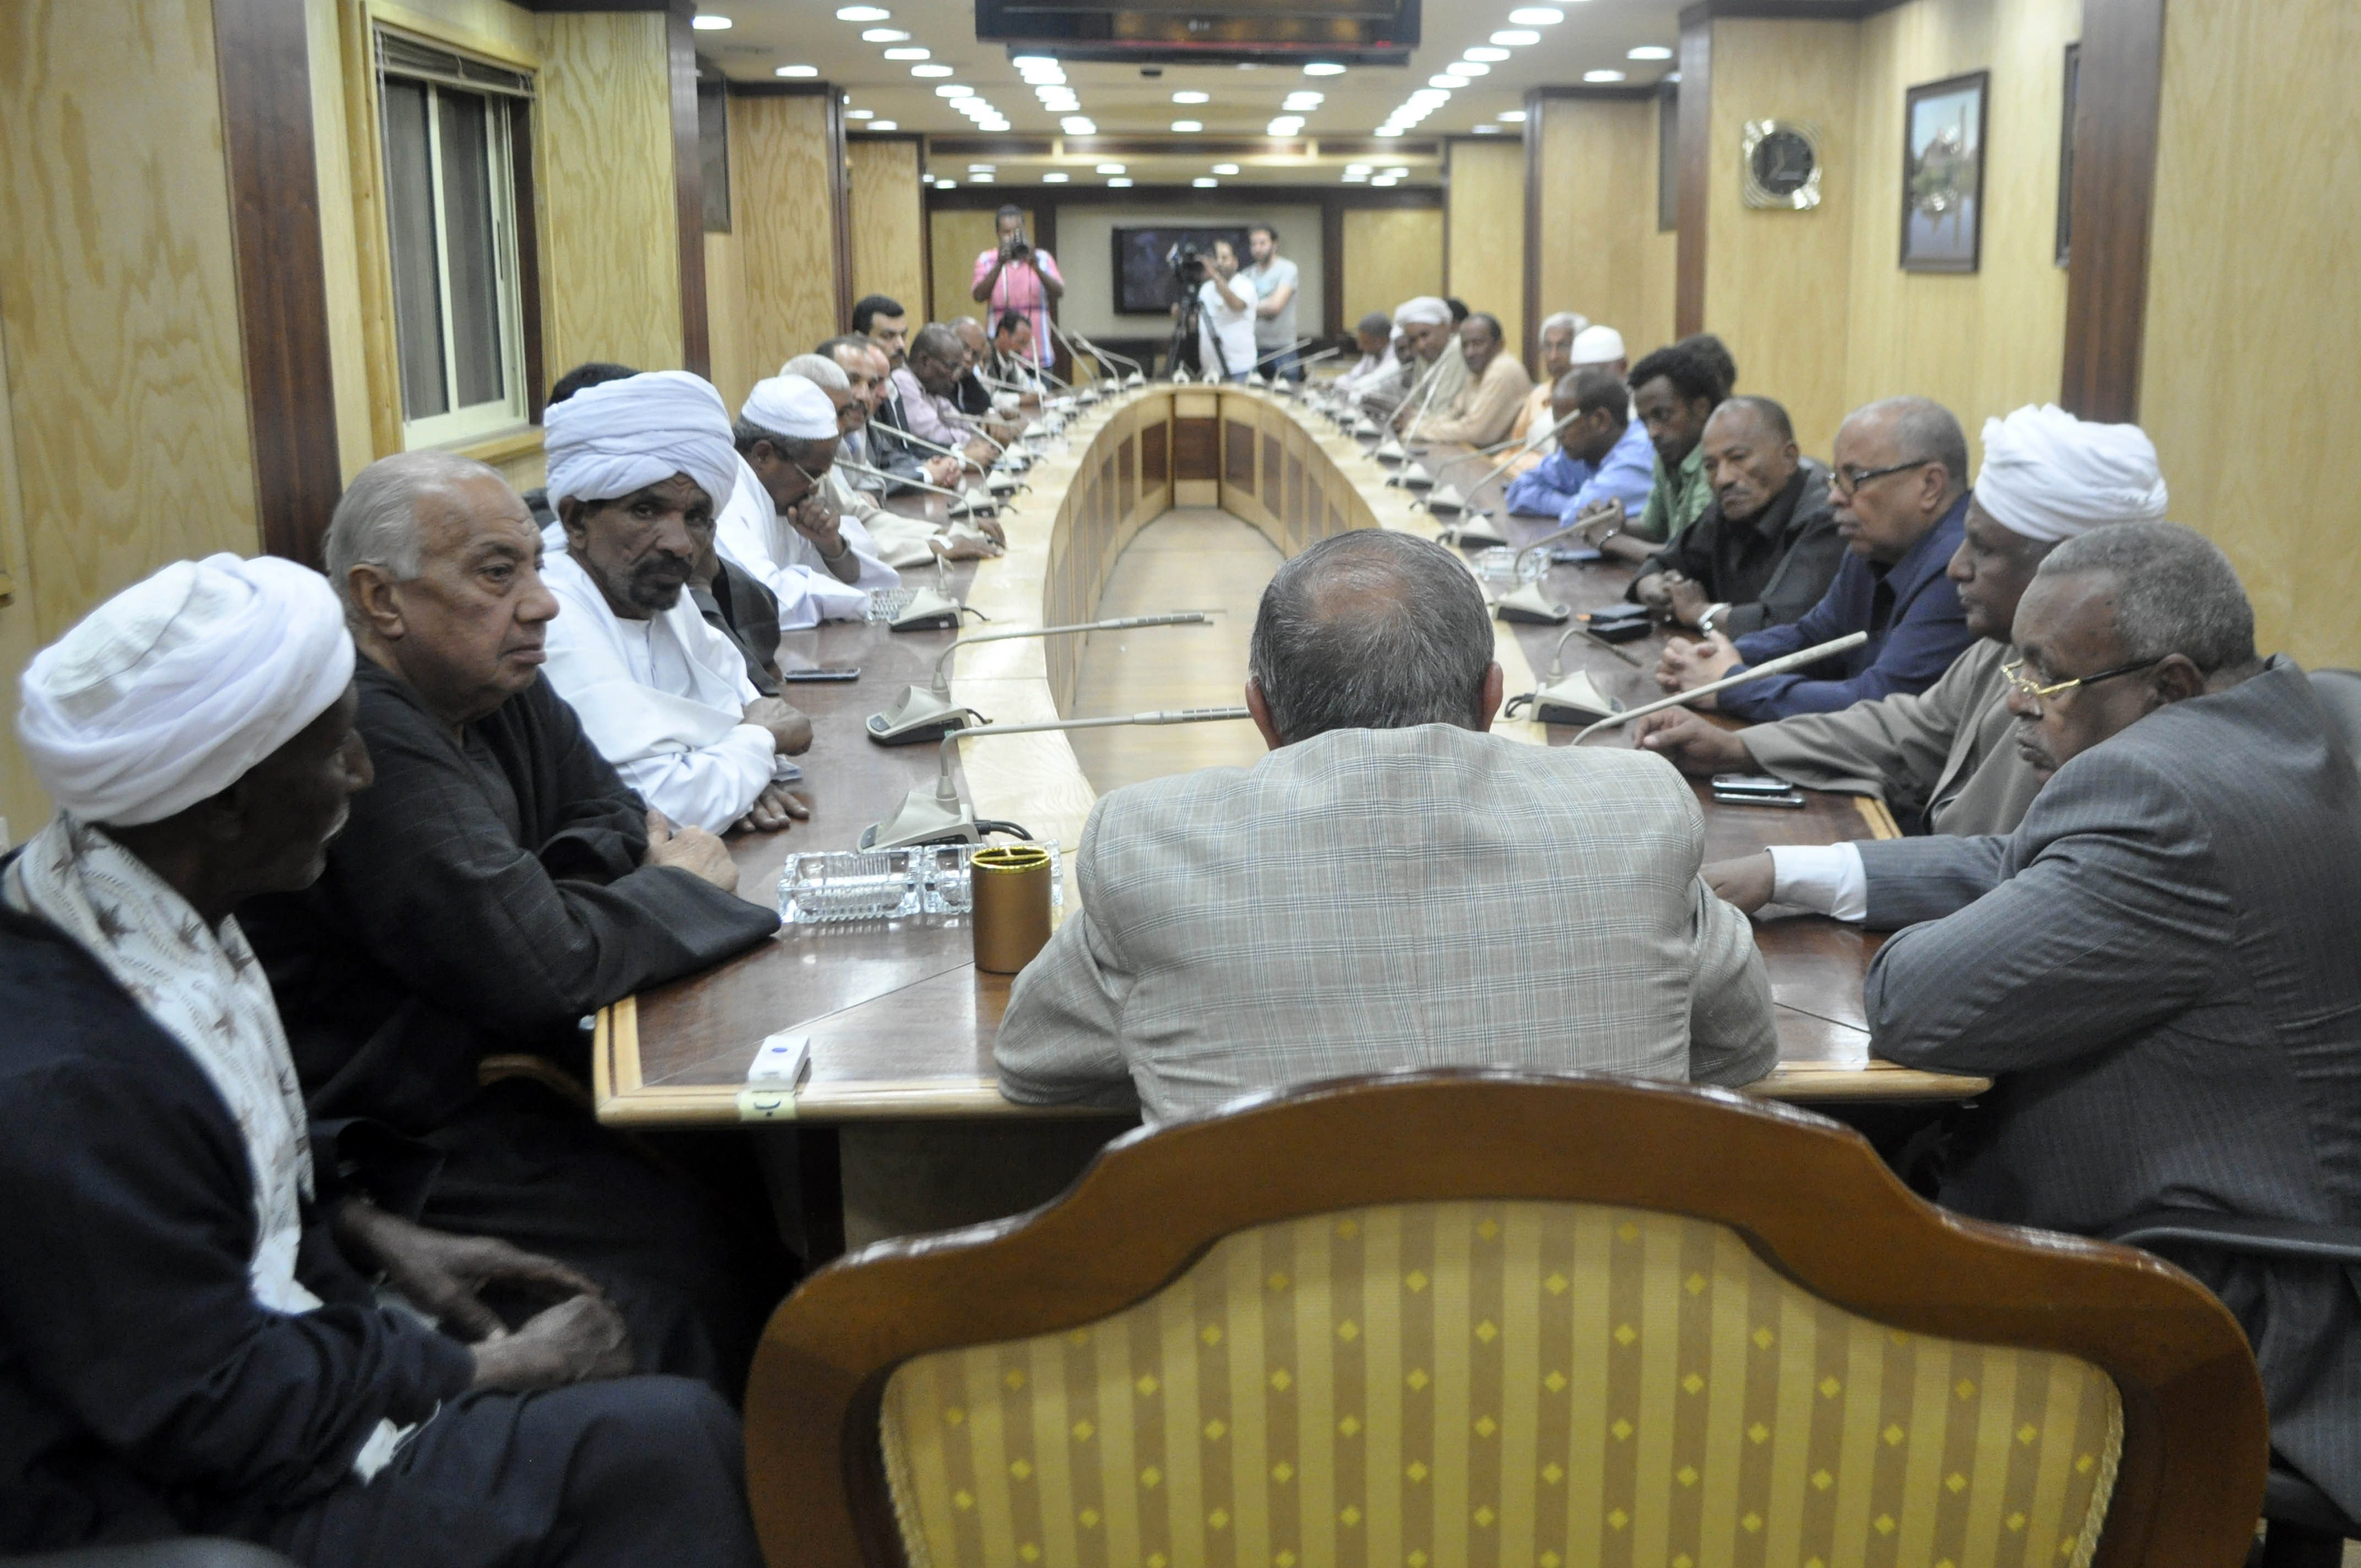 Egyptian Governor of the southern city of Aswan, Mostafa Yousry Attalah (C) leads a meeting gathering officials and representatives of the Bani Hilal, an Arab tribe, and the Dabudiya, a Nubian family following fighting between the two groups on April 7, 2014 at Aswan's governorate headquarters (AFP Photo)